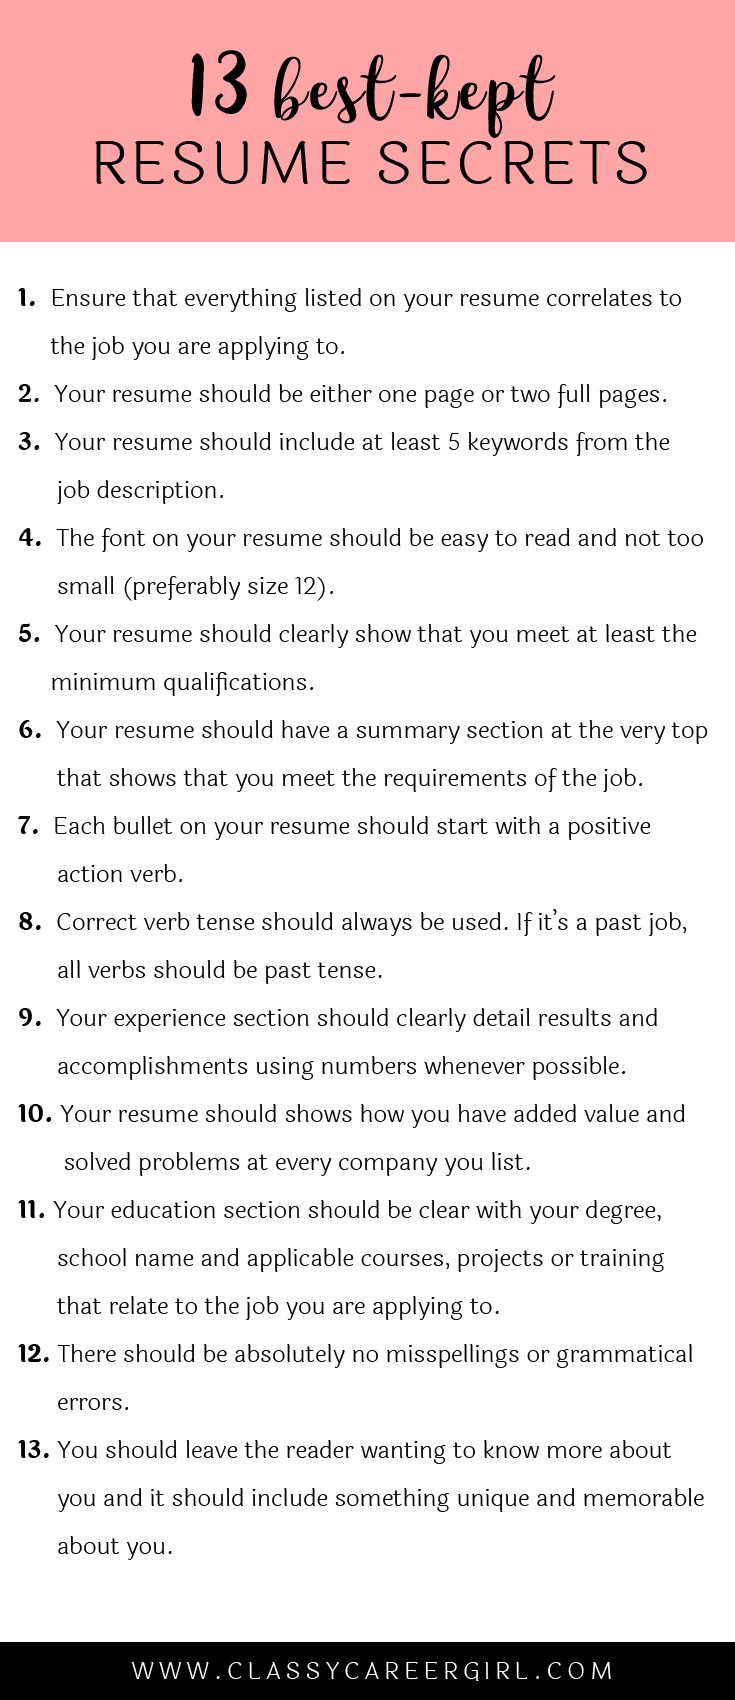 Opposenewapstandardsus  Ravishing  Ideas About Resume On Pinterest  Cv Format Resume Cv And  With Goodlooking Some Hiring Managers Will Toss Your Resume Out If You Dont Know These  With Astounding Professional Resume Formats Also Resume Layout Word In Addition Massage Therapy Resume And Technical Support Resume As Well As Obama Resume Additionally Resume And Cover Letter Examples From Pinterestcom With Opposenewapstandardsus  Goodlooking  Ideas About Resume On Pinterest  Cv Format Resume Cv And  With Astounding Some Hiring Managers Will Toss Your Resume Out If You Dont Know These  And Ravishing Professional Resume Formats Also Resume Layout Word In Addition Massage Therapy Resume From Pinterestcom